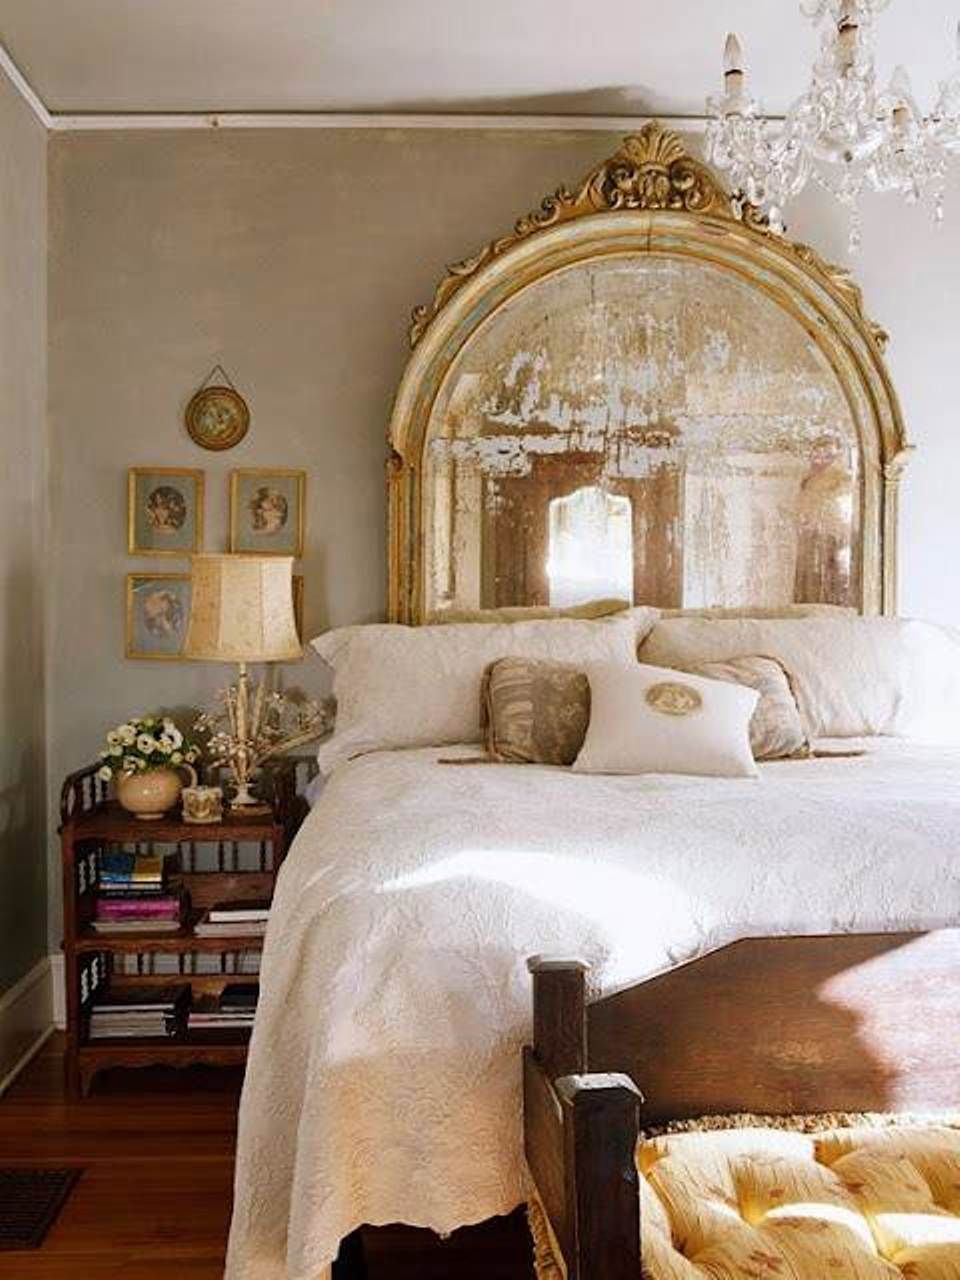 Attirant Victorian Bedroom Decorating Ideas For Women Looks Like Something Shelley  Would Love:)